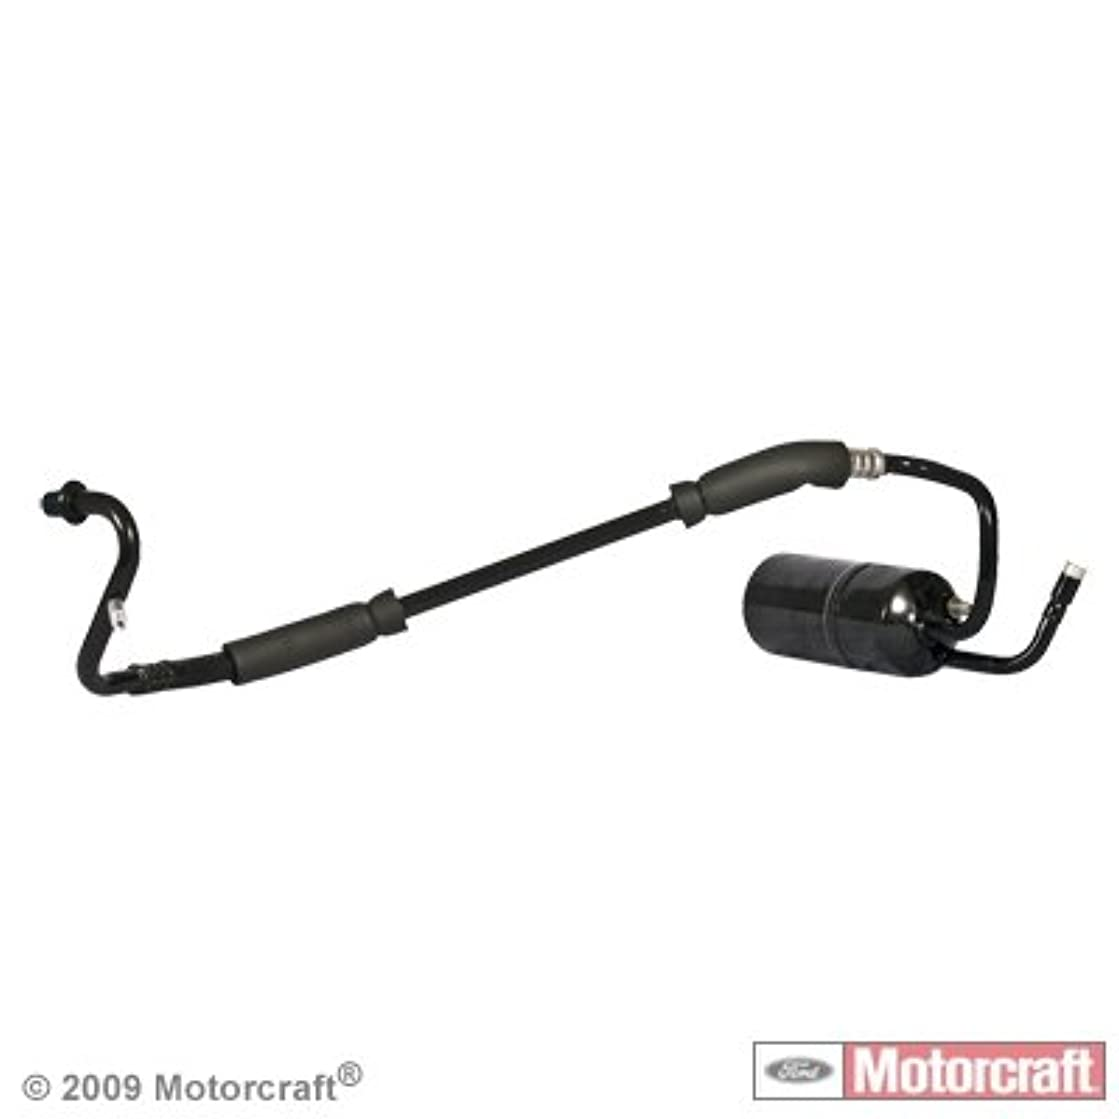 Motorcraft YF2766 Air Conditioning Accumulator with Hose Assembly